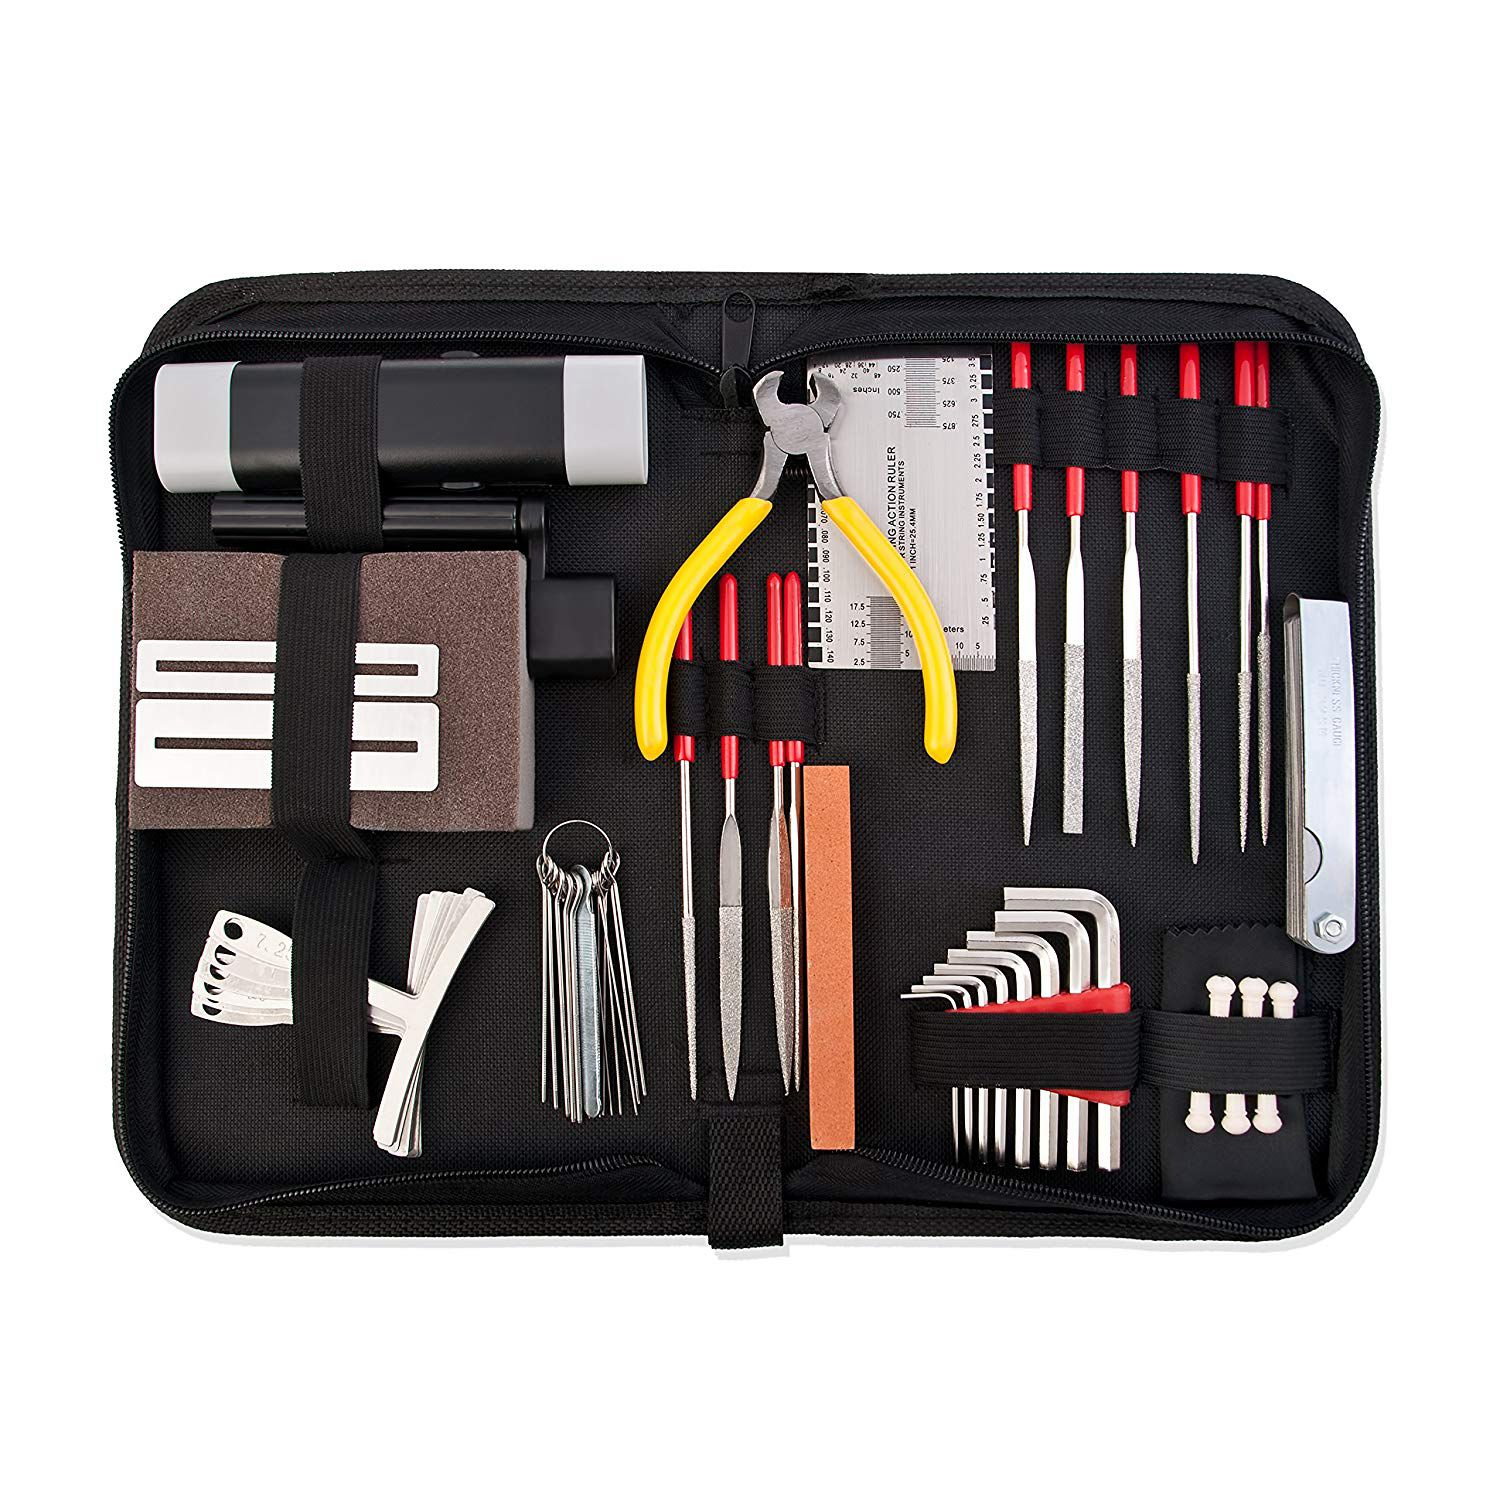 BMDT-Guitar Repair and Maintenance Accessories Kit - Complete Care Set of Tools For Guitar Ukulele & Bass. Guitar Kit With Con все цены